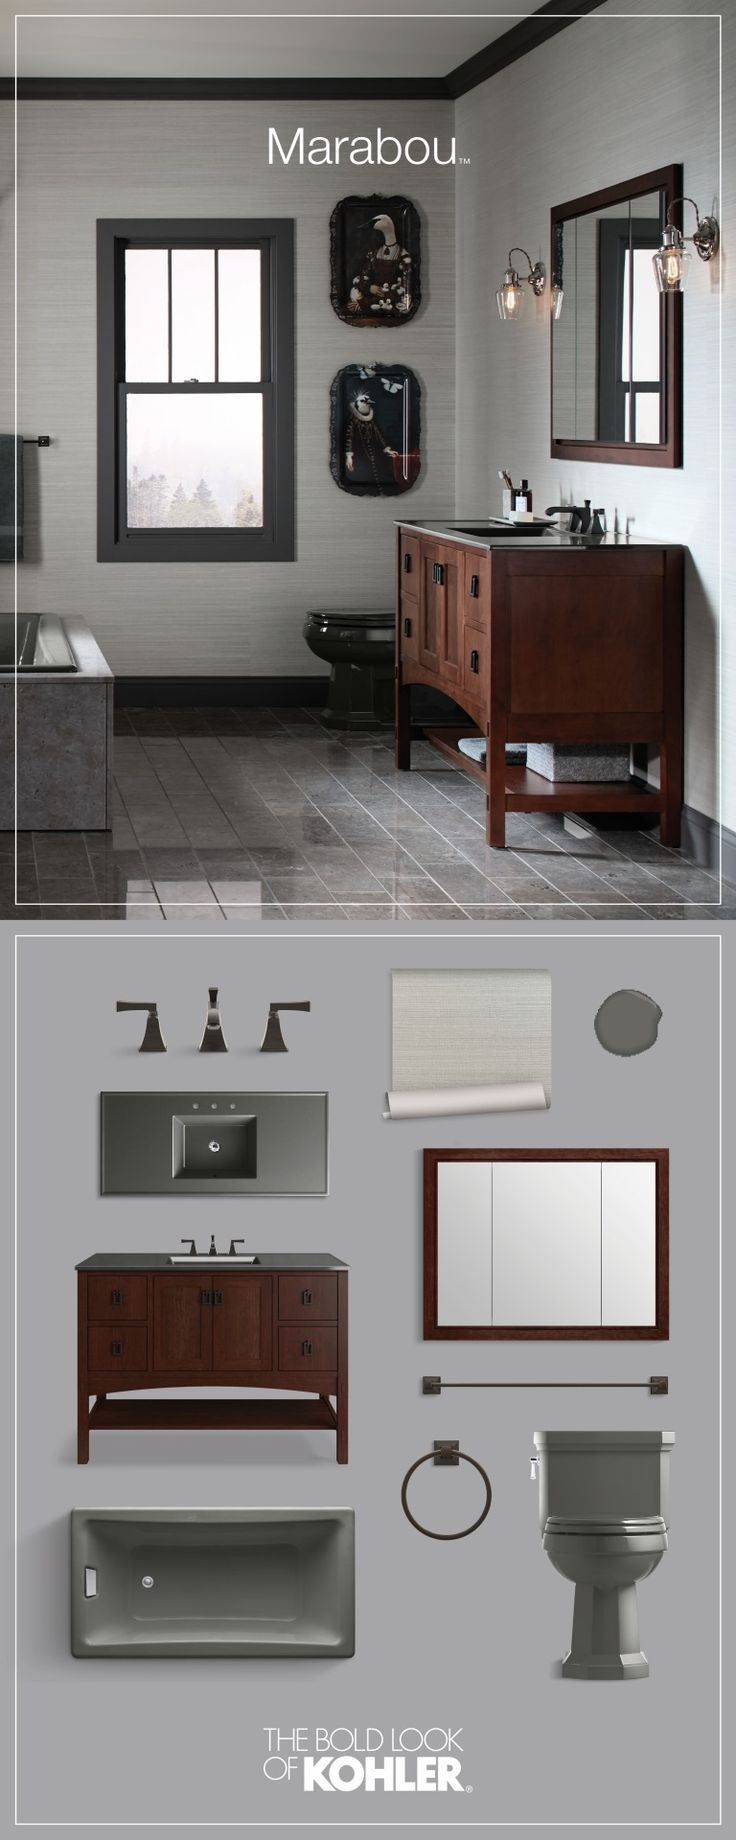 Gallery For Website Get the look Traditional bathroom featuring Kohler Marabou vanity